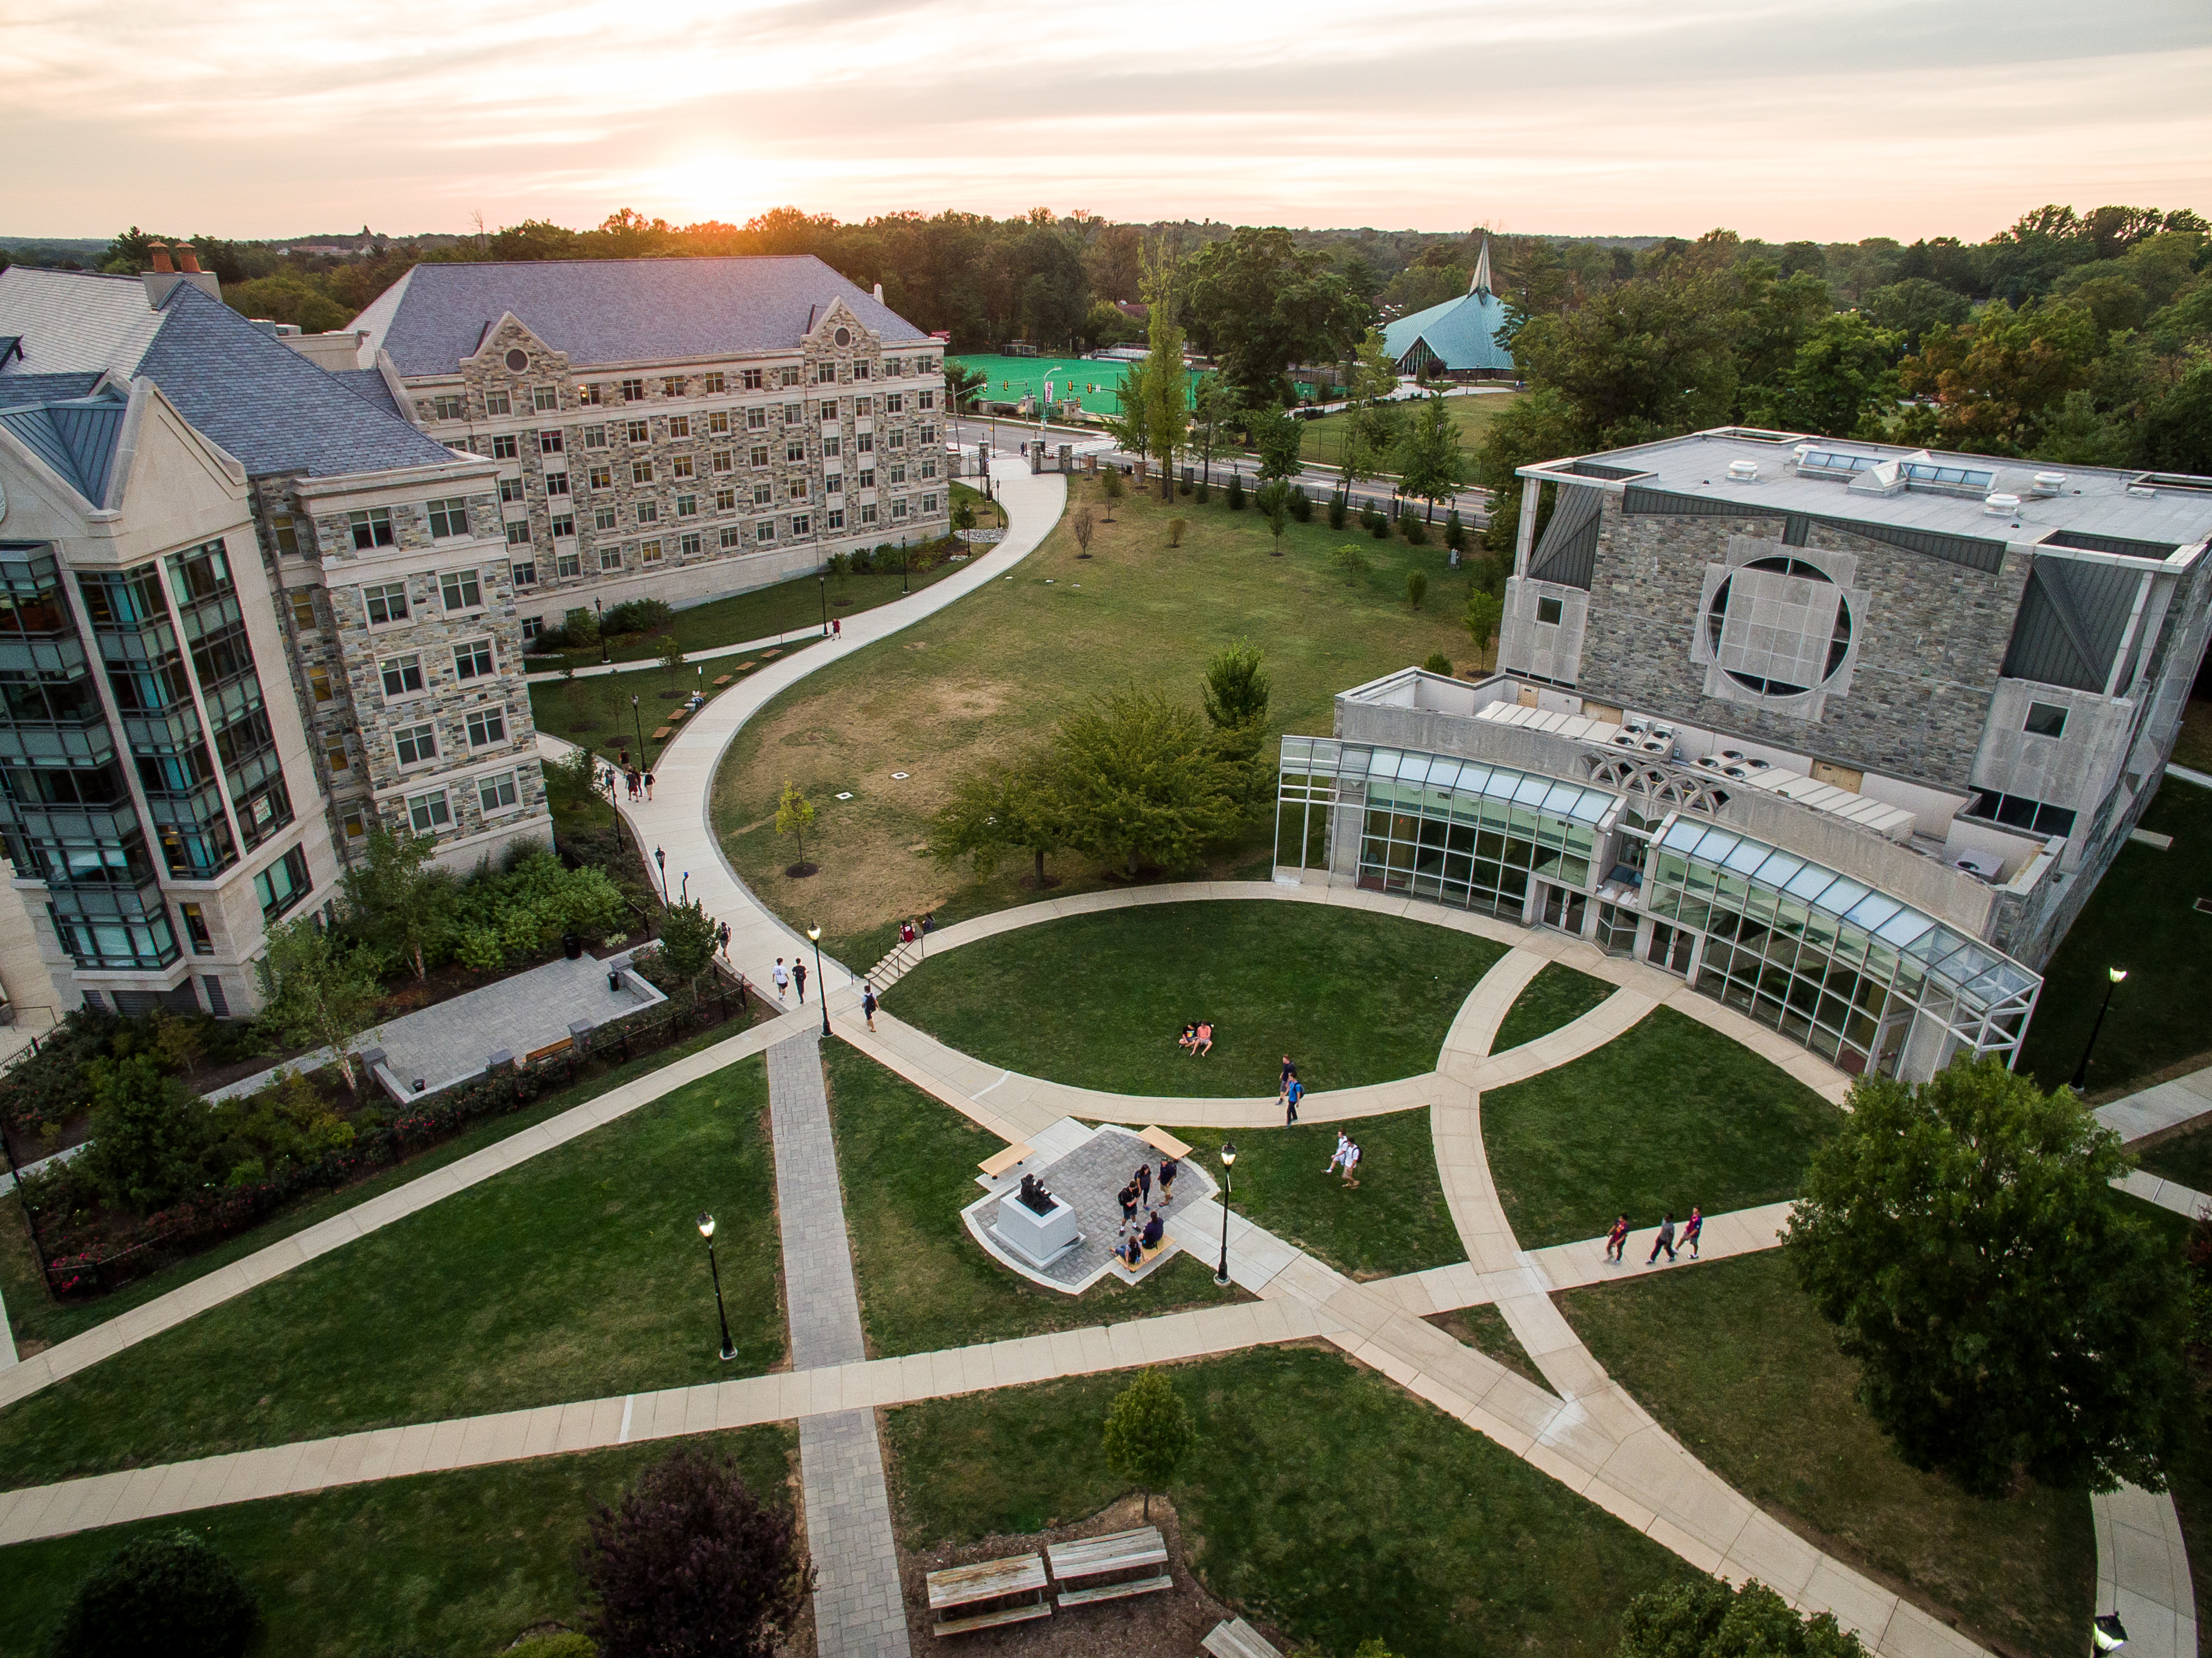 An aerial shot of campus shows the pathways between buildings at sunset.